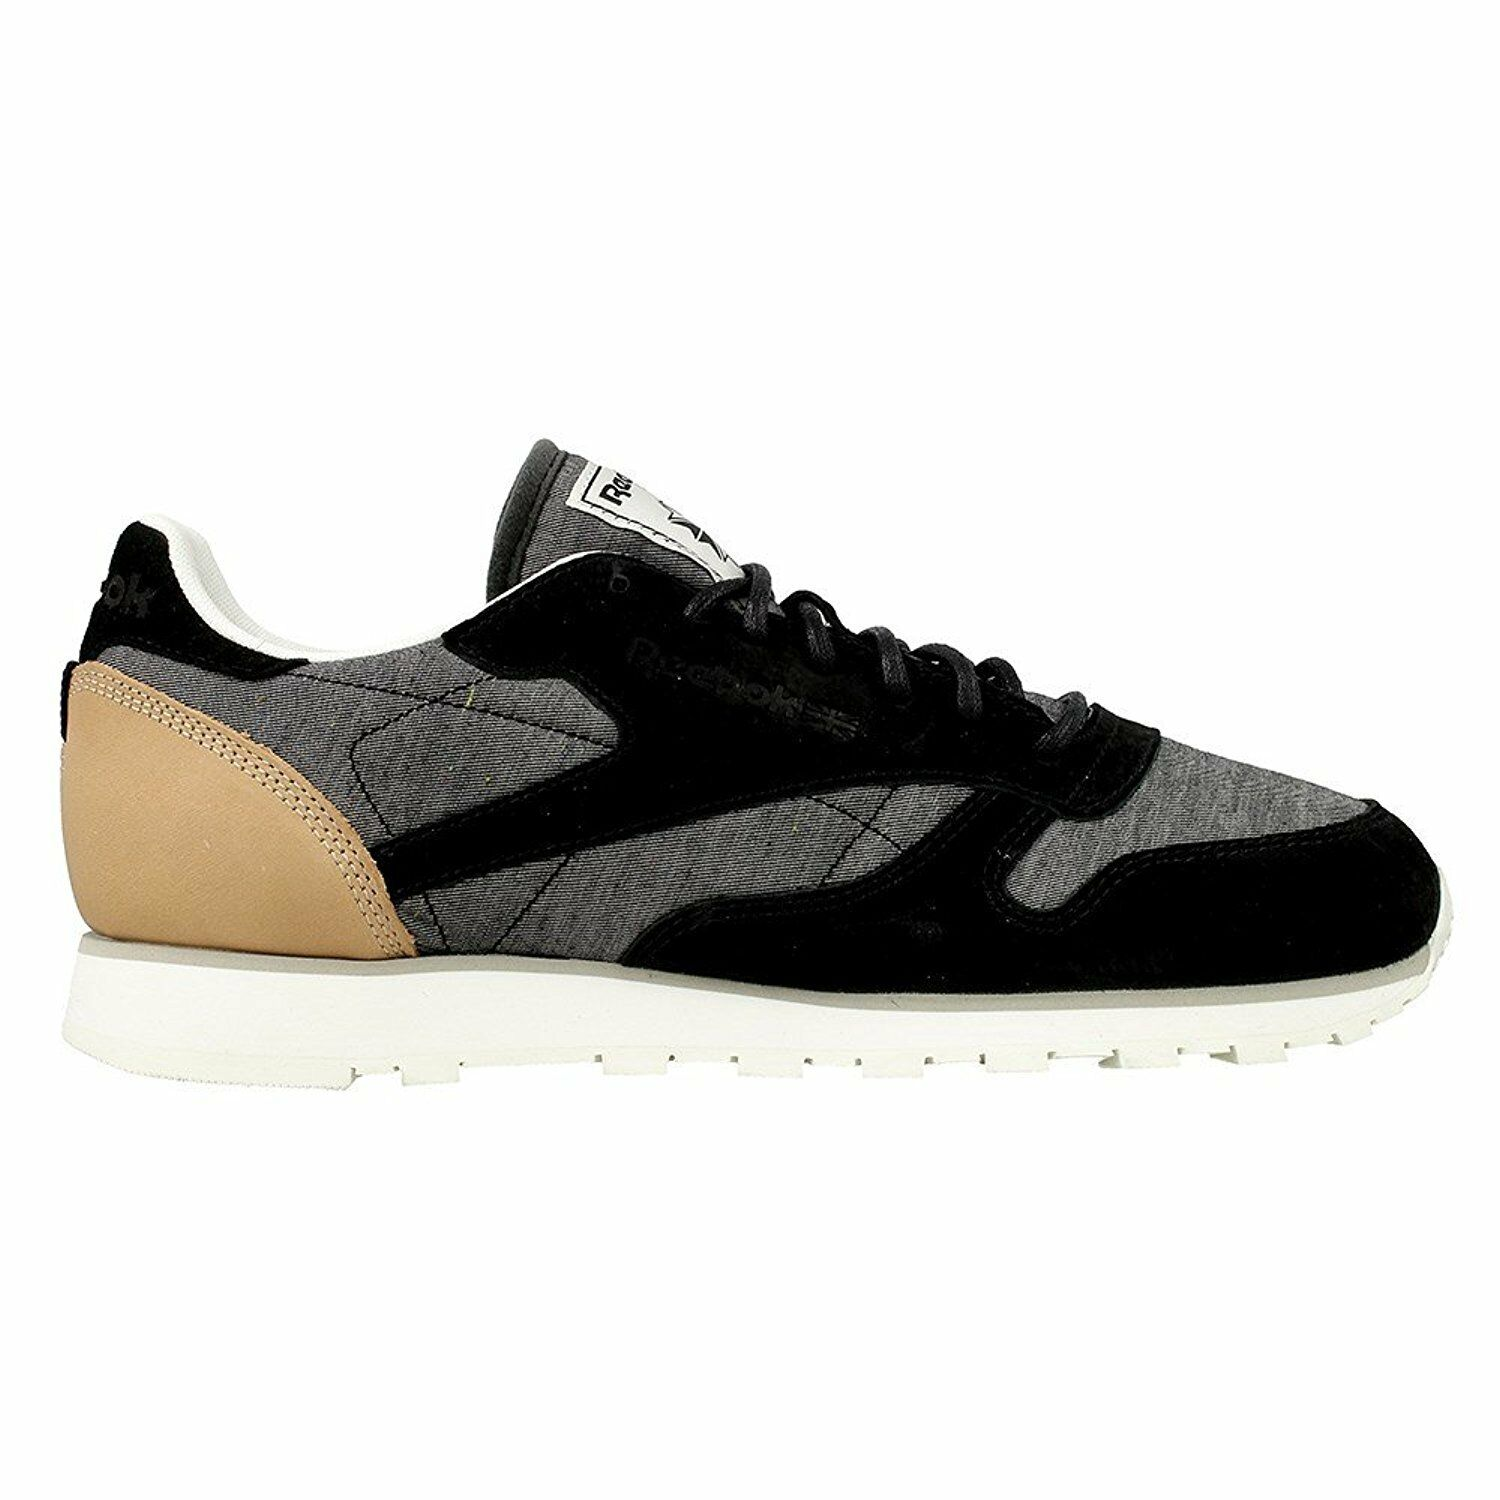 REEBOK Classic Leather Fleck Mens Sneakers Trainers AQ9723